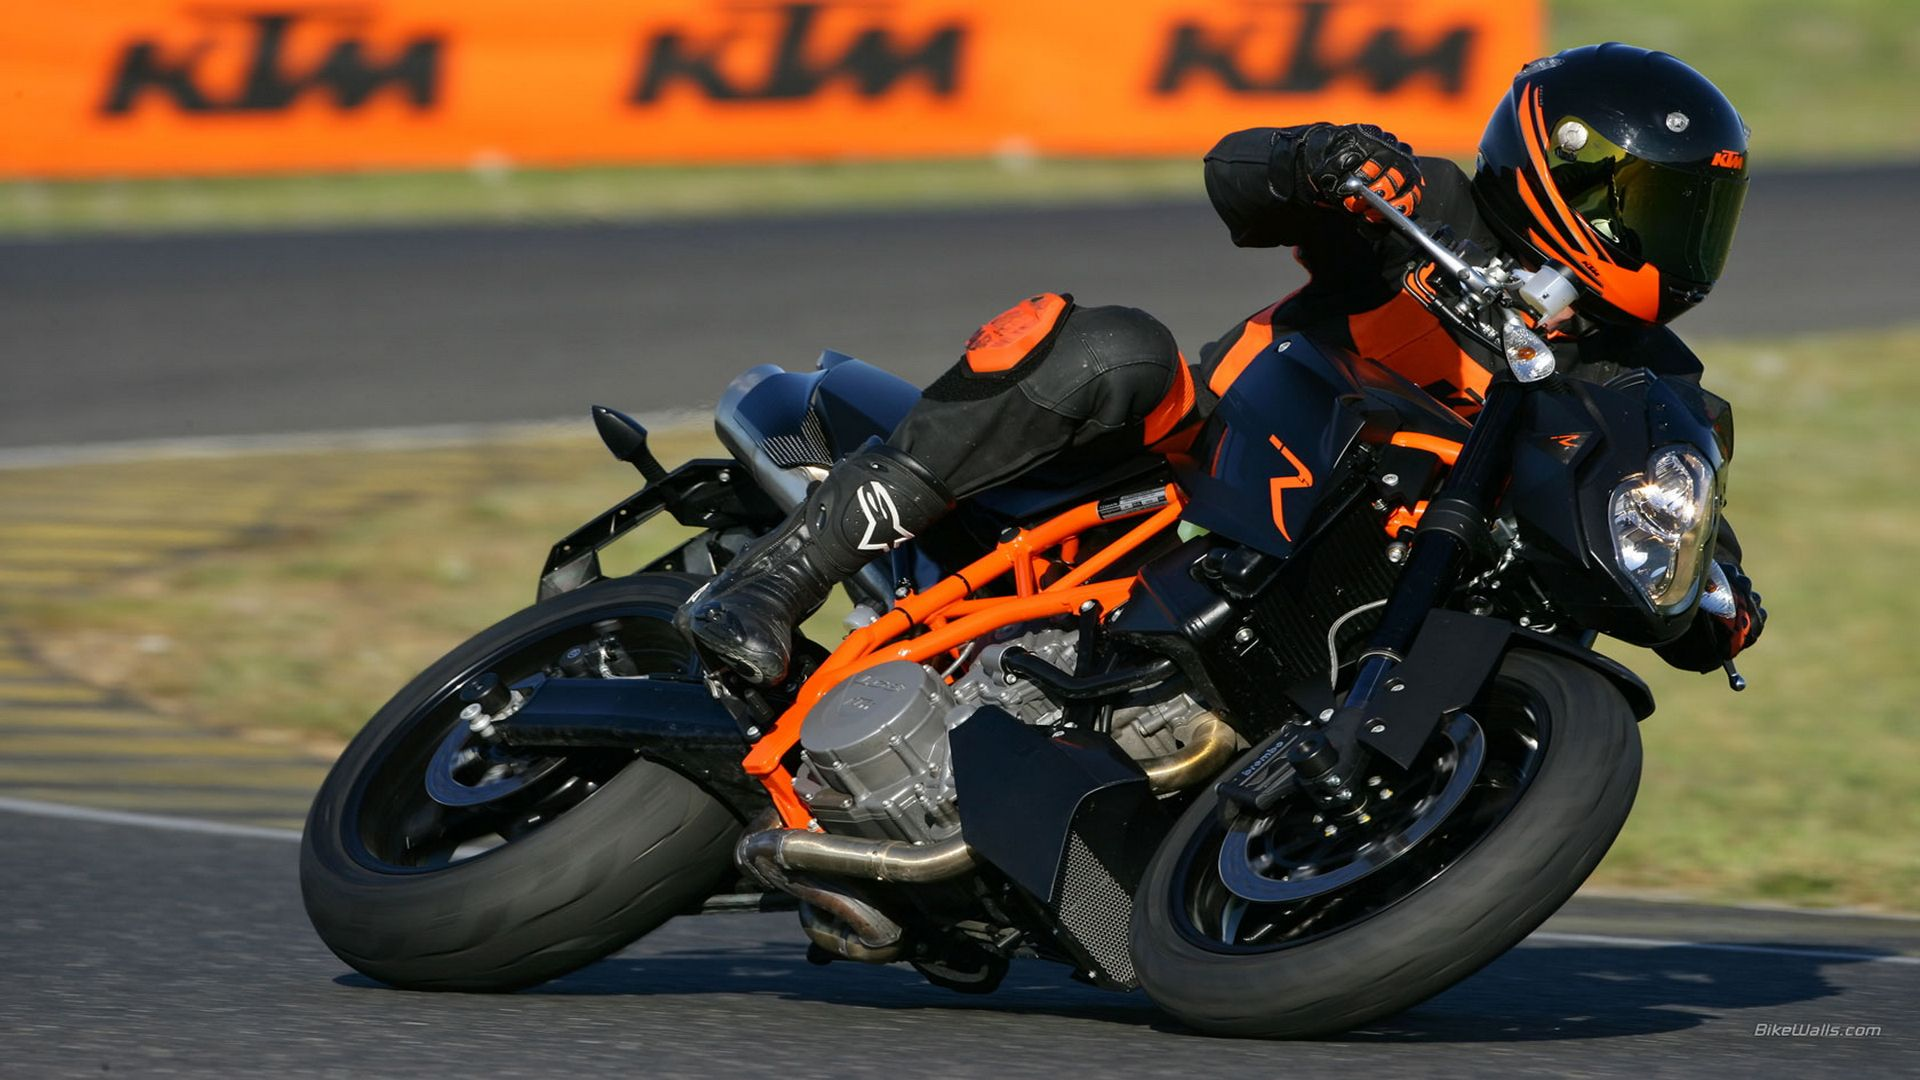 wallpapers ktm duke bike vehicle rok bagoros stunt hd 1920x1080